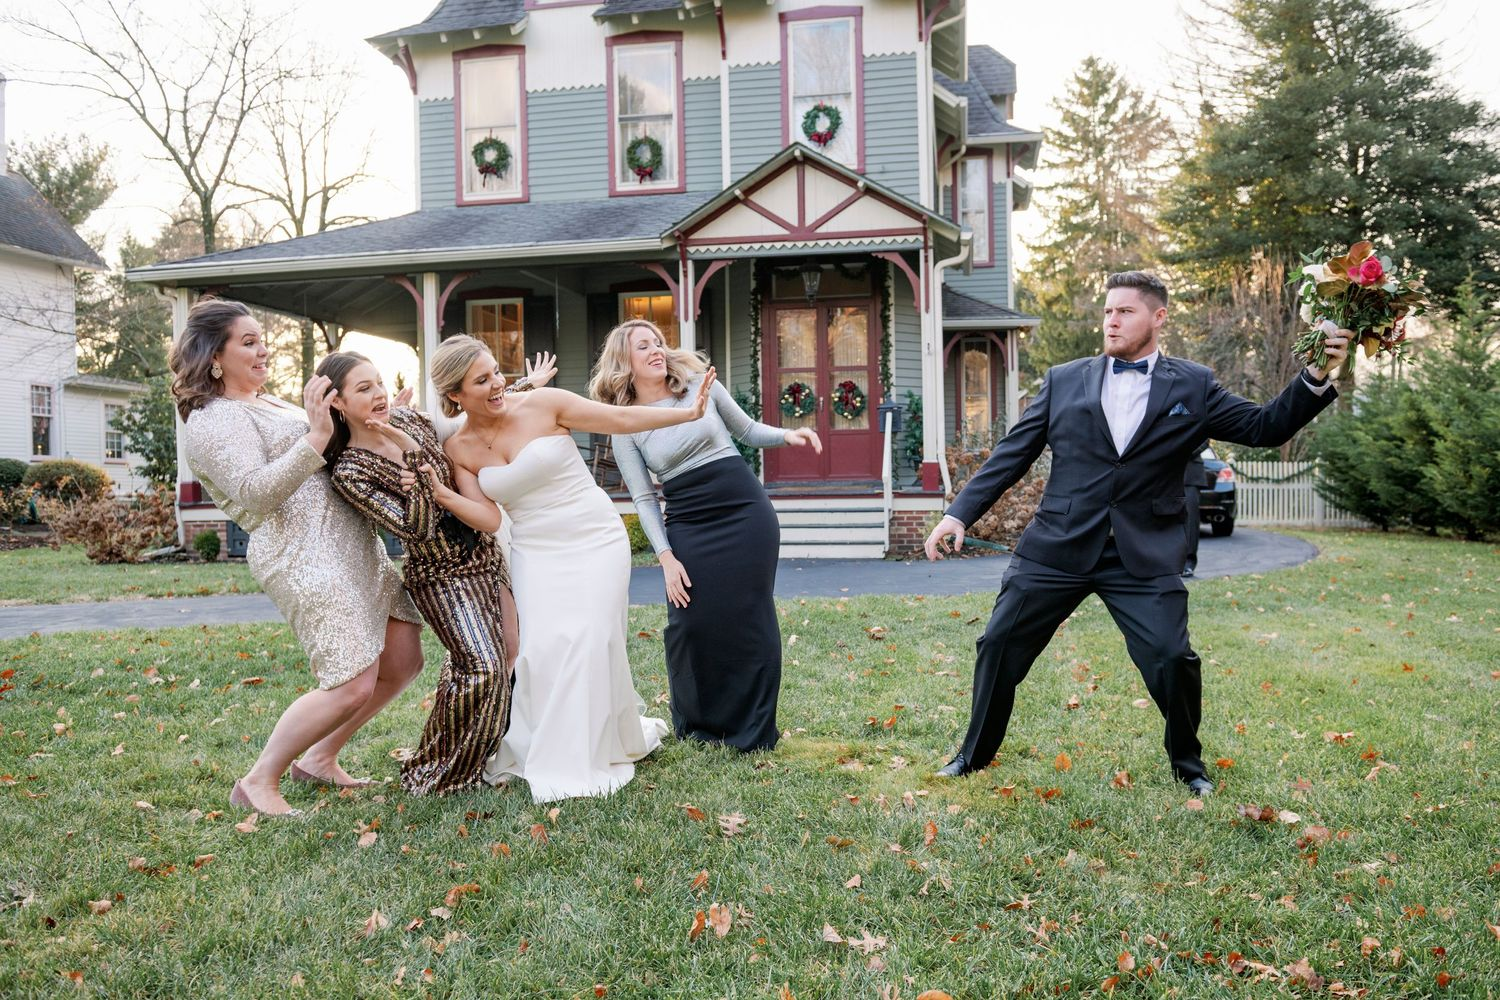 fun candid moment between bride and her siblings